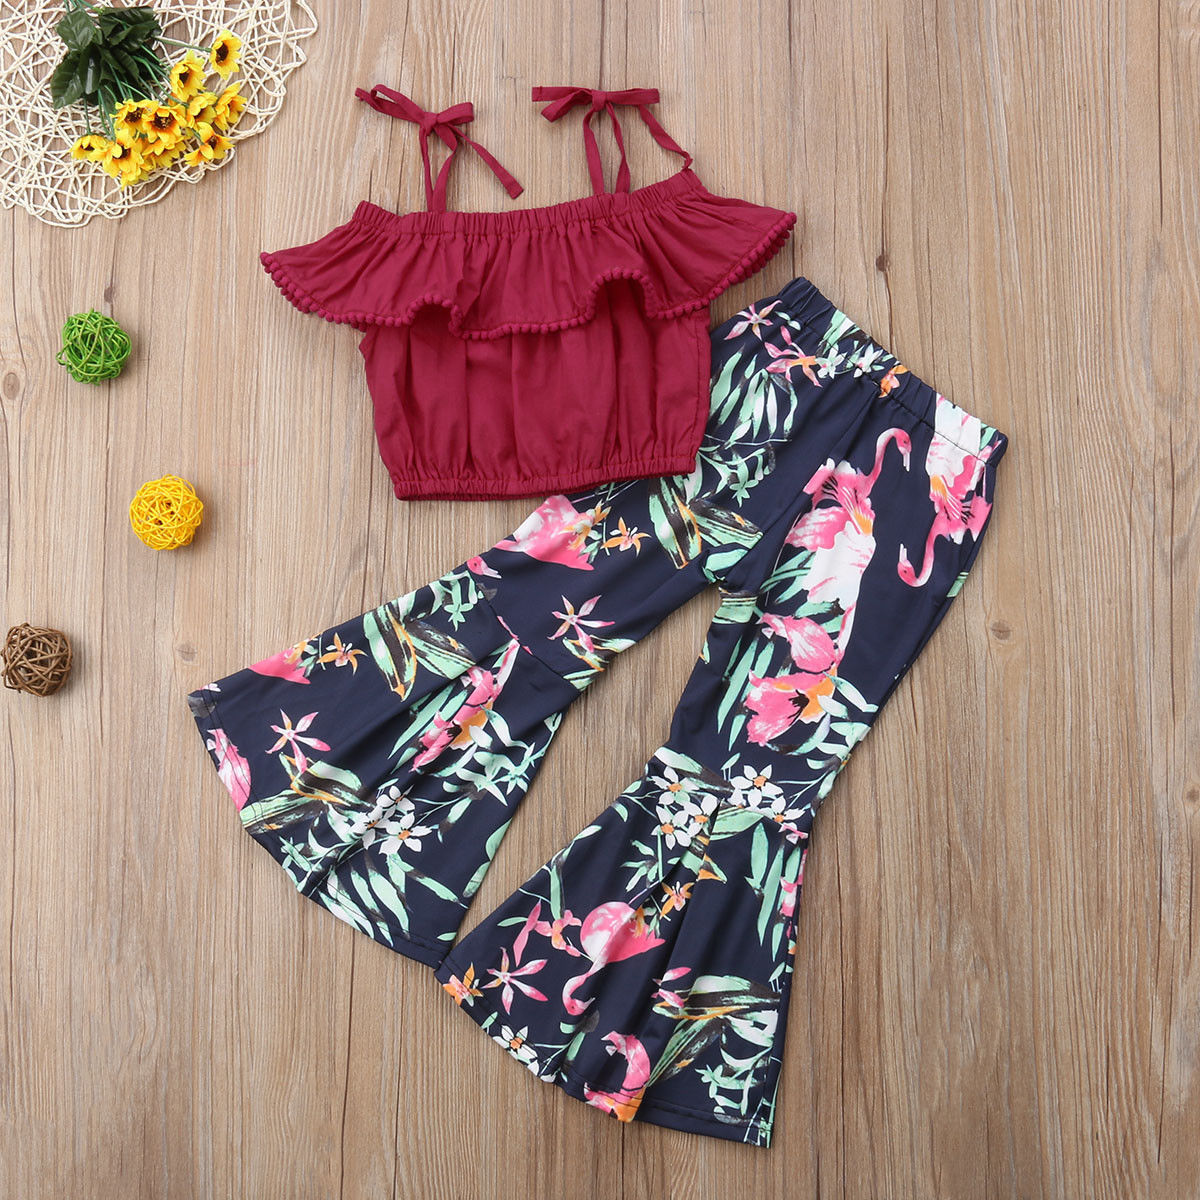 2PCS Kid Baby Girl Casual Party Suit Off Shoulder Tops+Bell-Bottoms Flared Pants